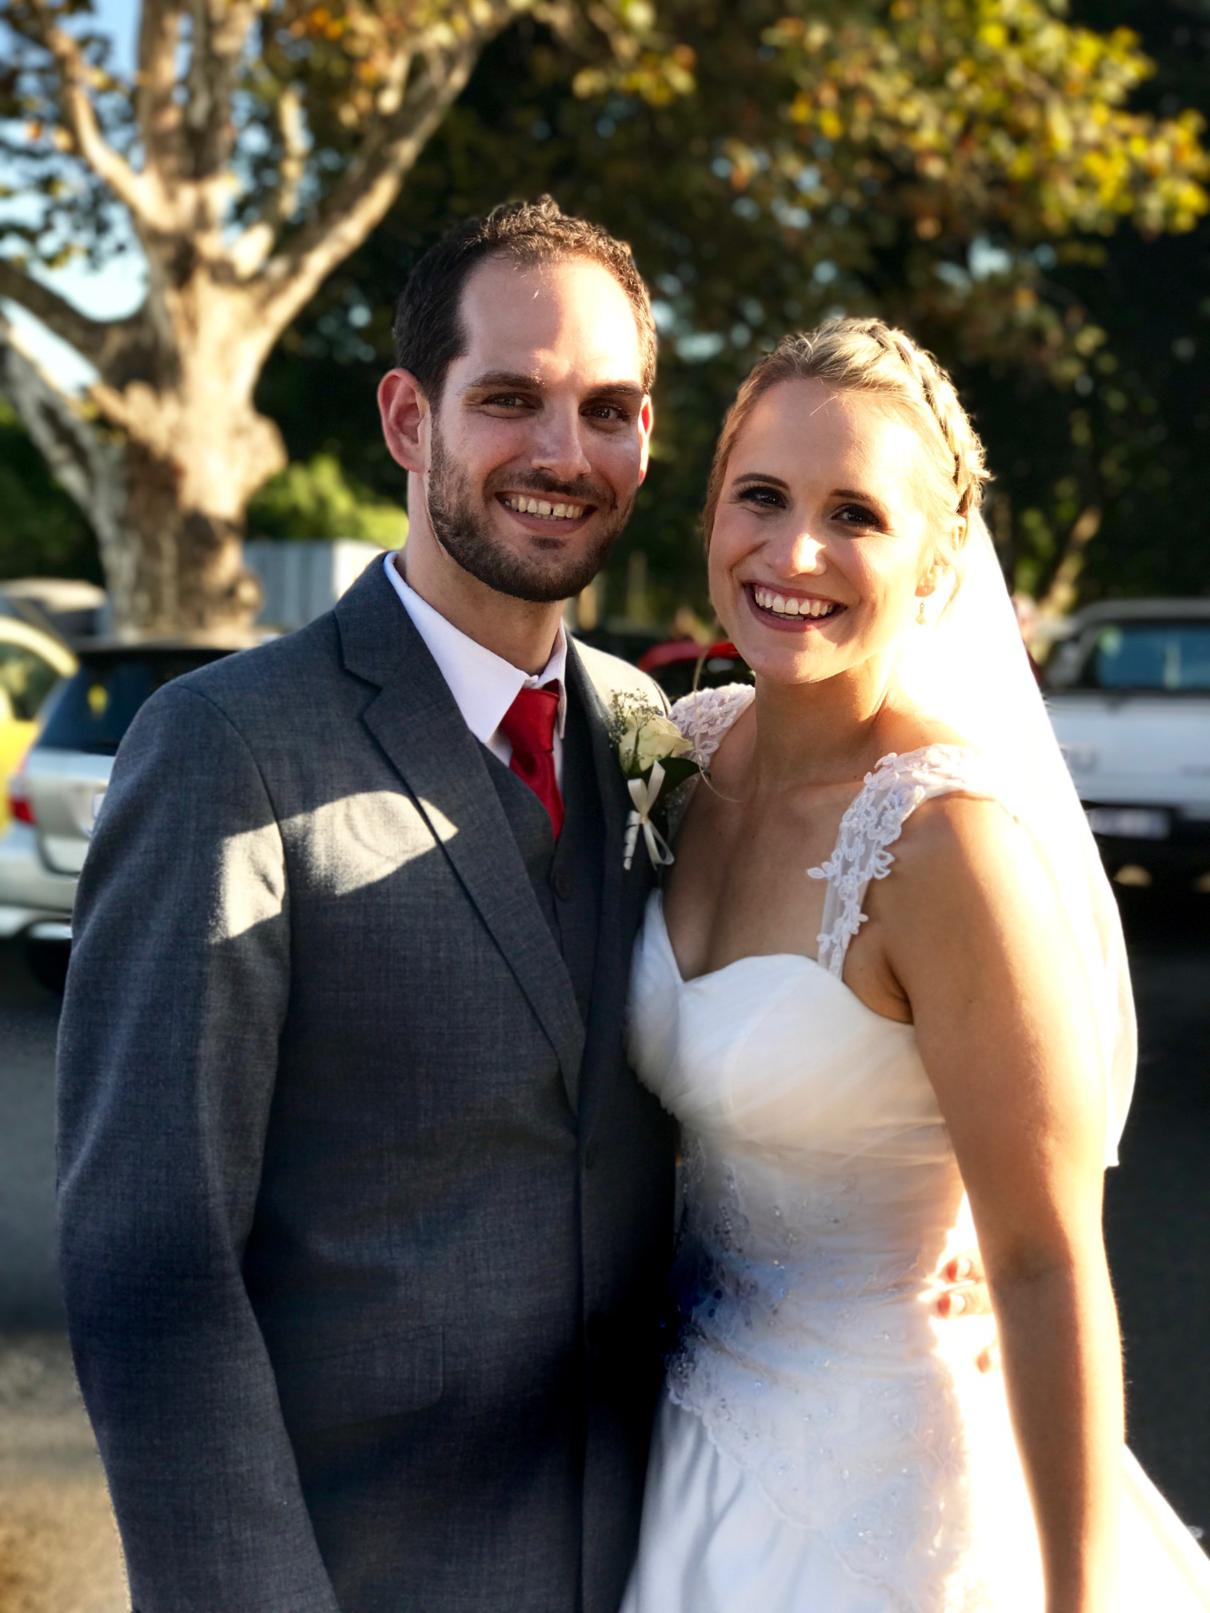 Wedding DJ jarryd Sunkel - Professional Wedding Music & DJ - Photobooth hire in KZN